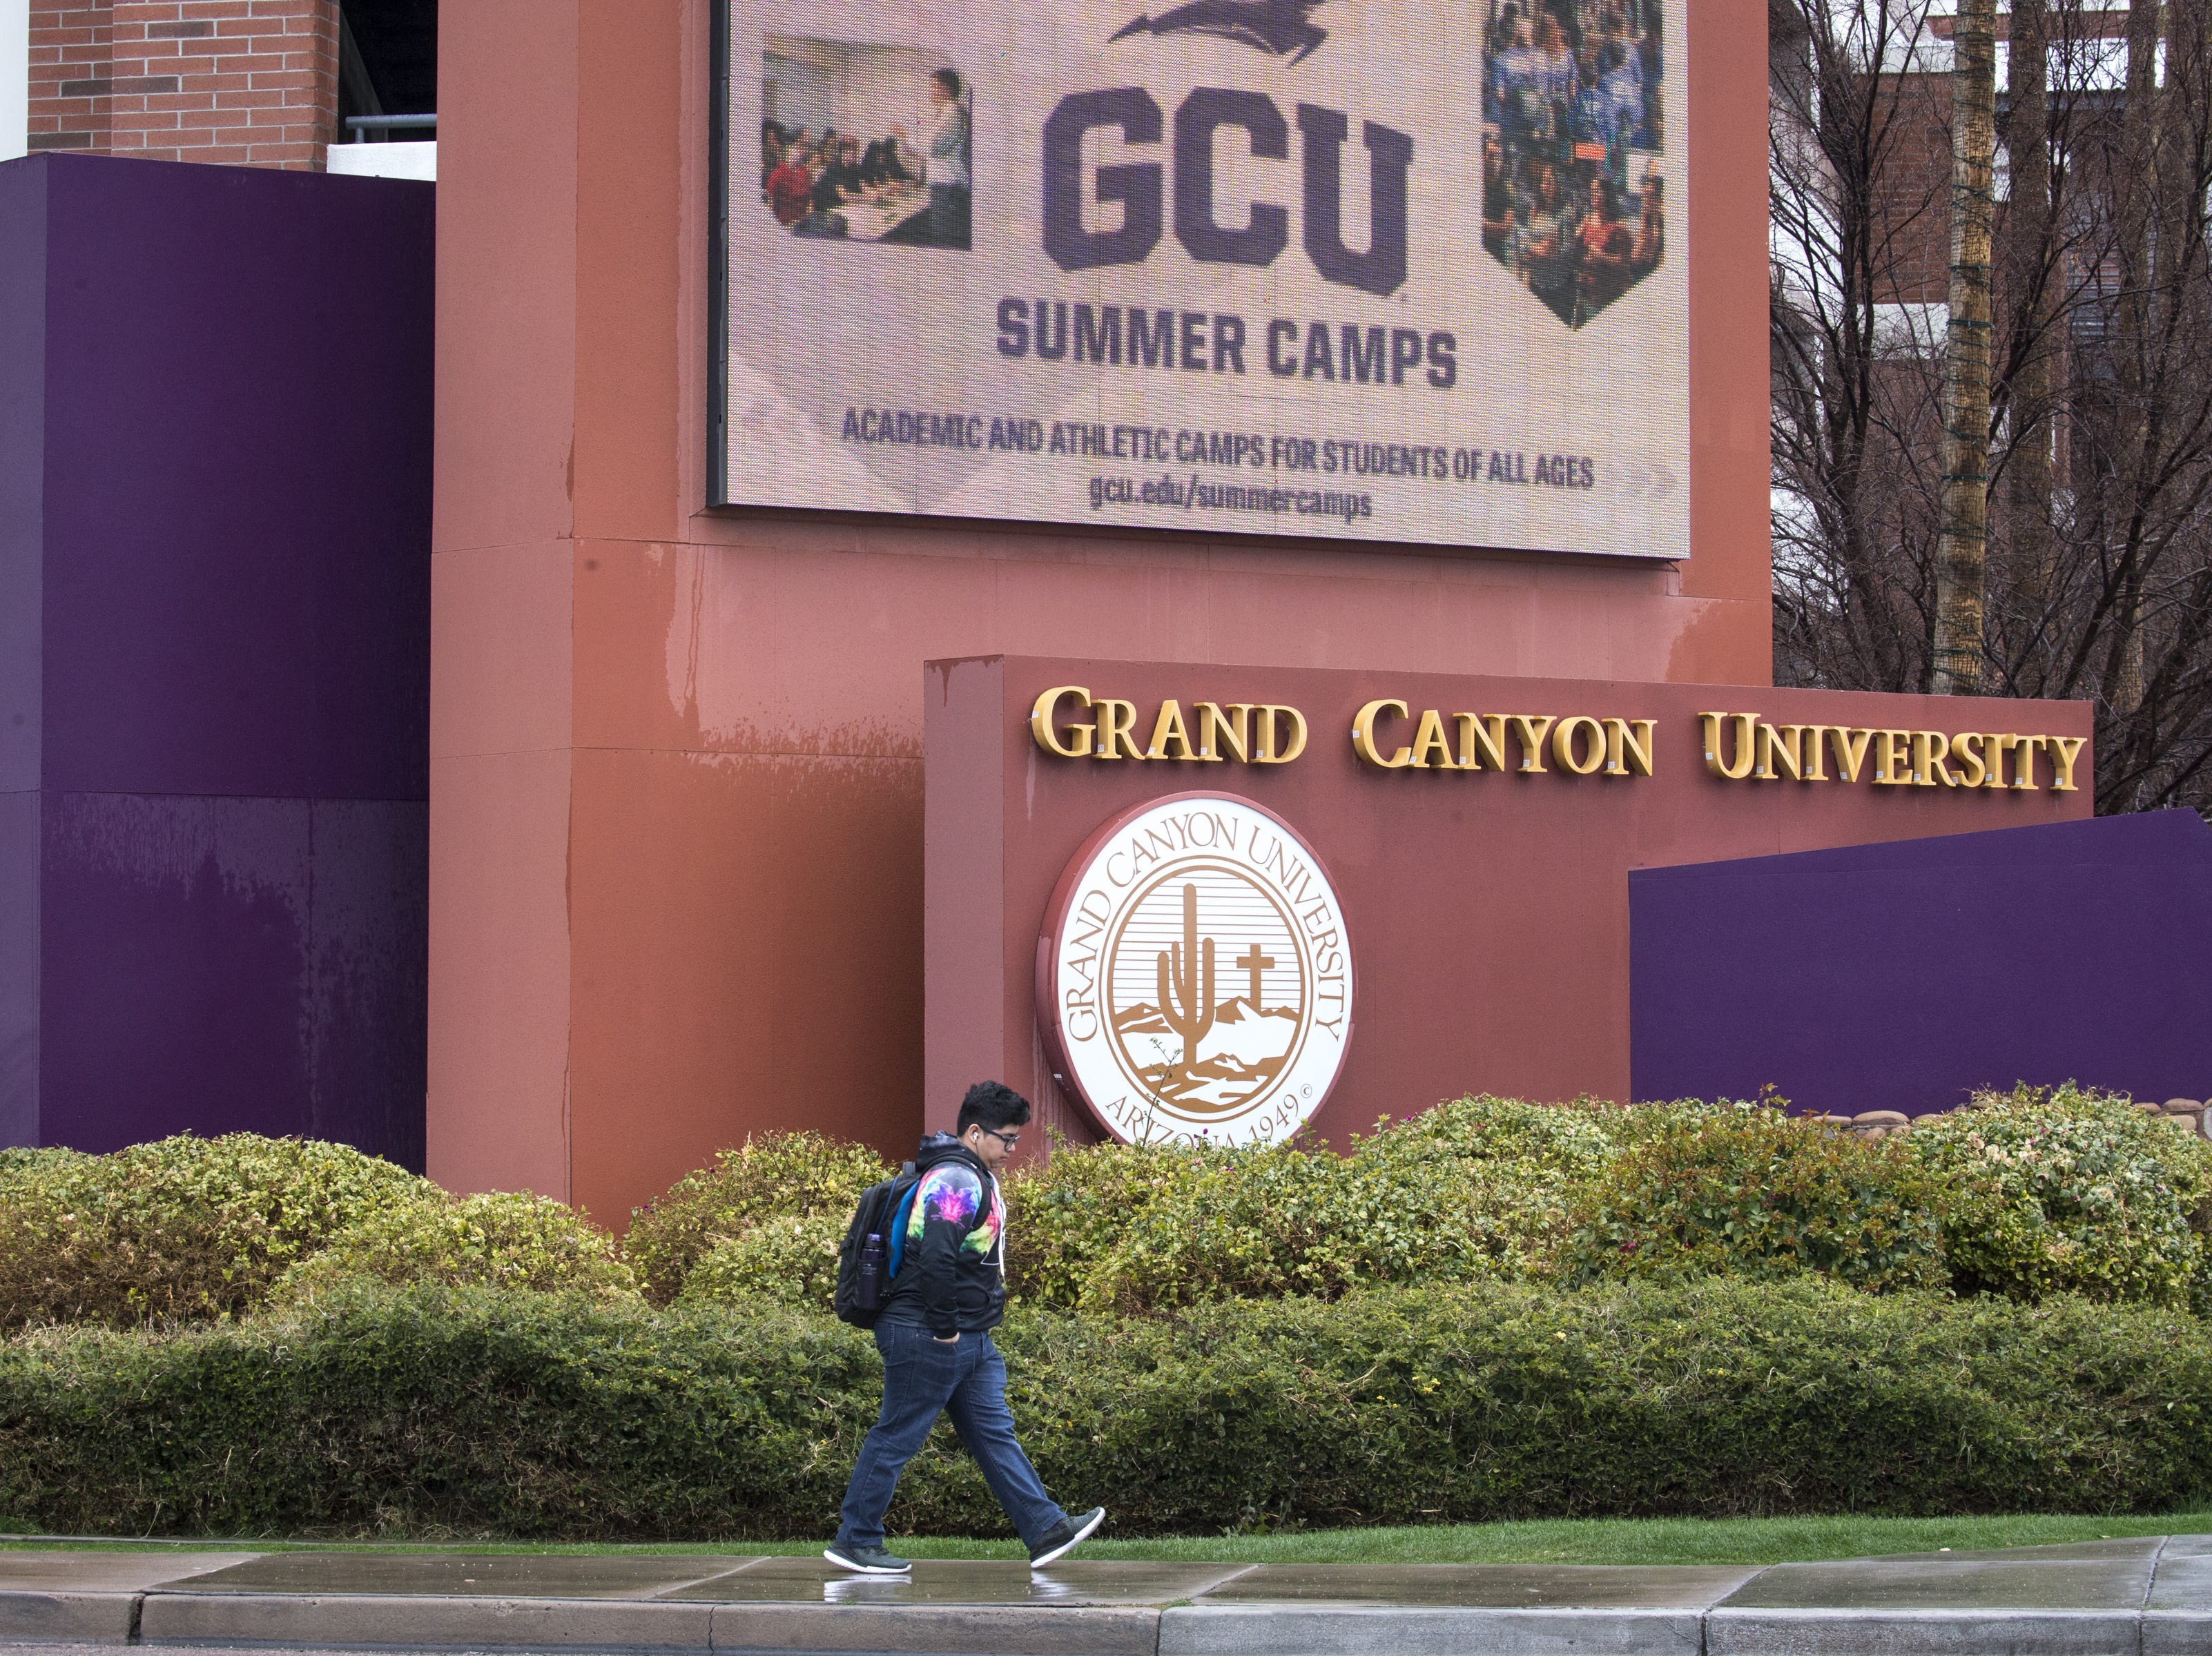 Grand Canyon University, February 21, 2019, at 3300 W Camelback Rodd, Phoenix.